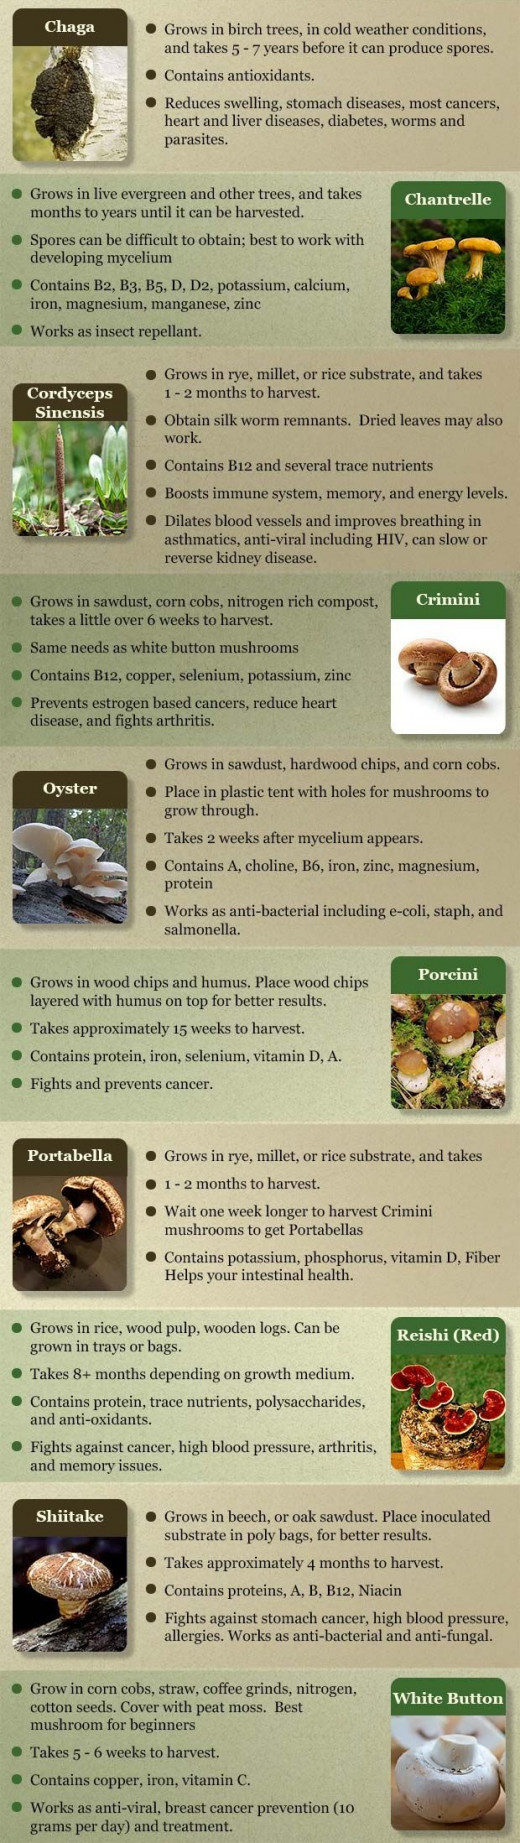 Check Out This Great Information About Mushrooms.